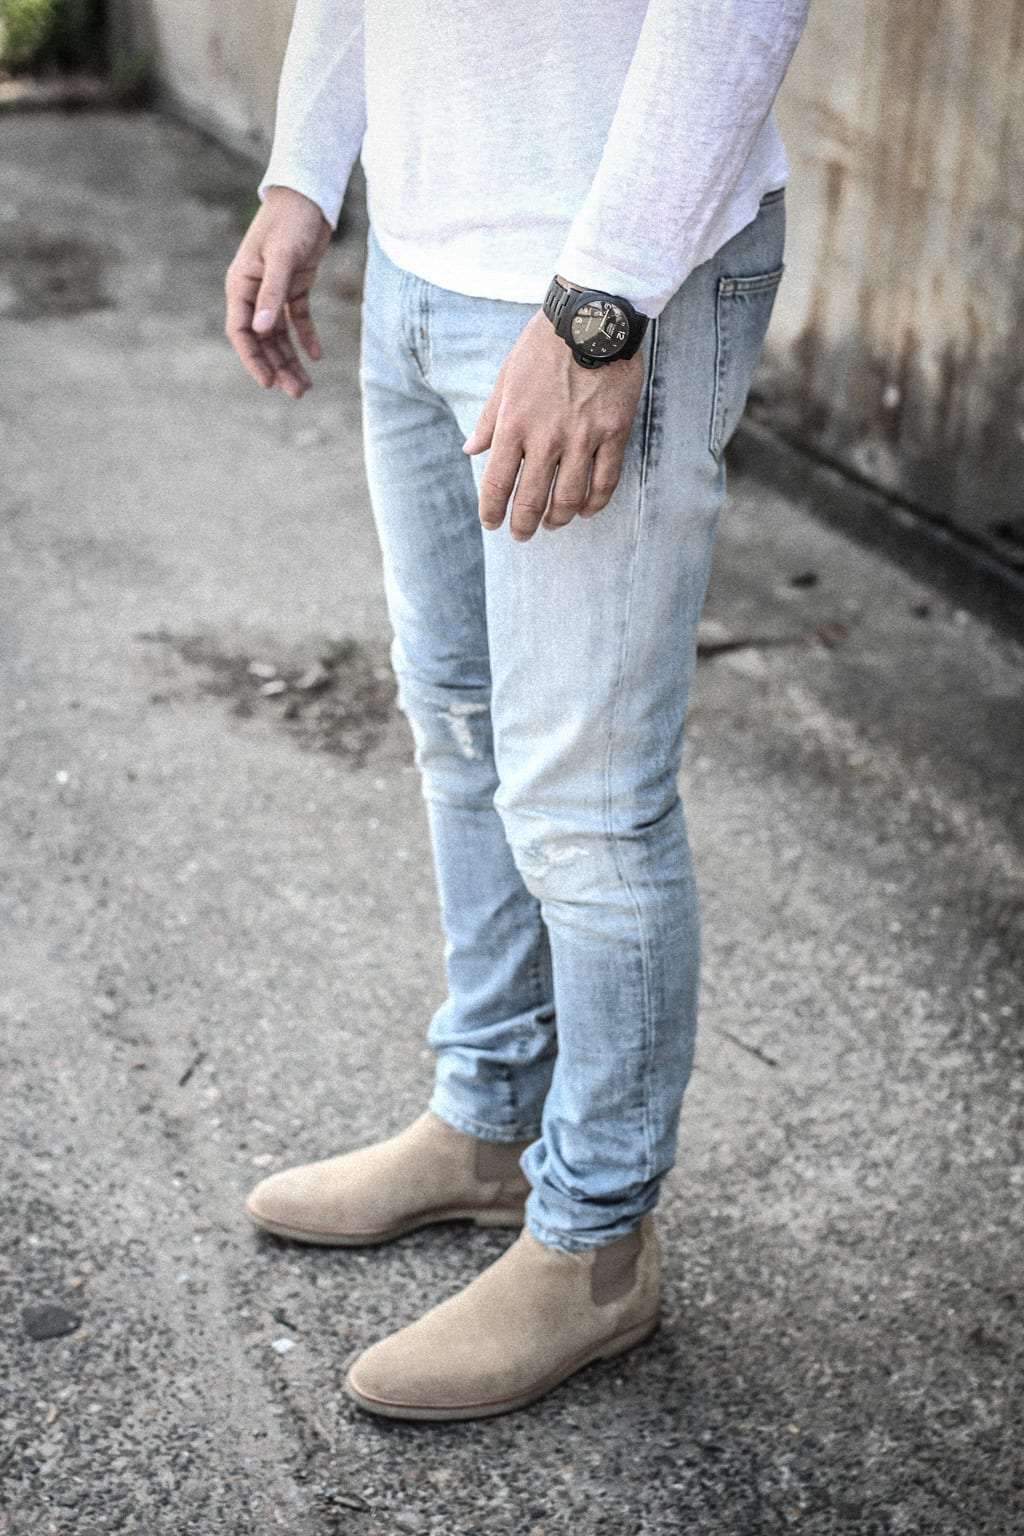 CK1603_Constantly-K-anthony-tony-jung-fußball-spieler-private-fashion-street-style-7105-2